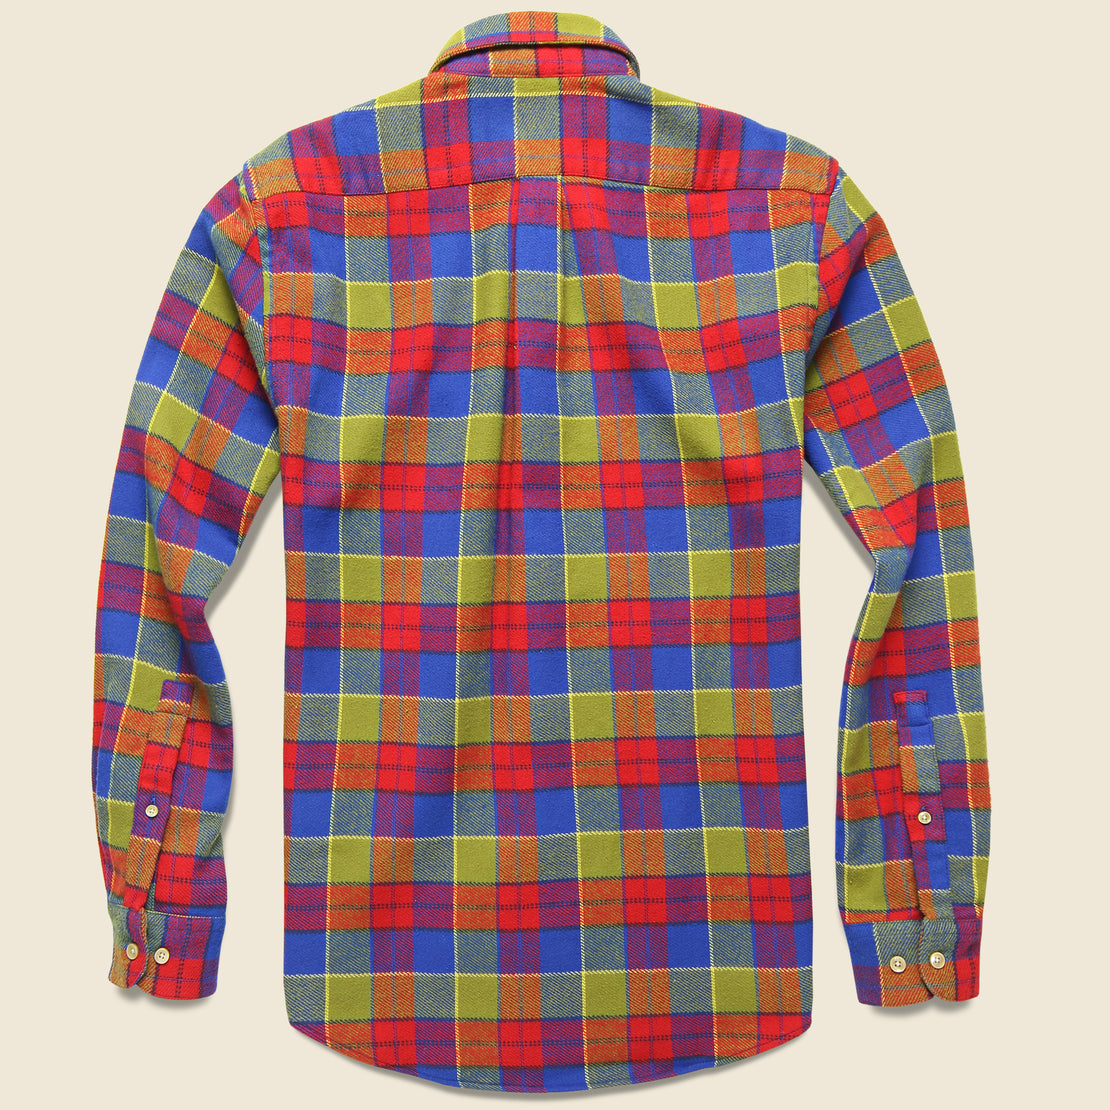 Nebraska Check Flannel - Red/Green/Blue